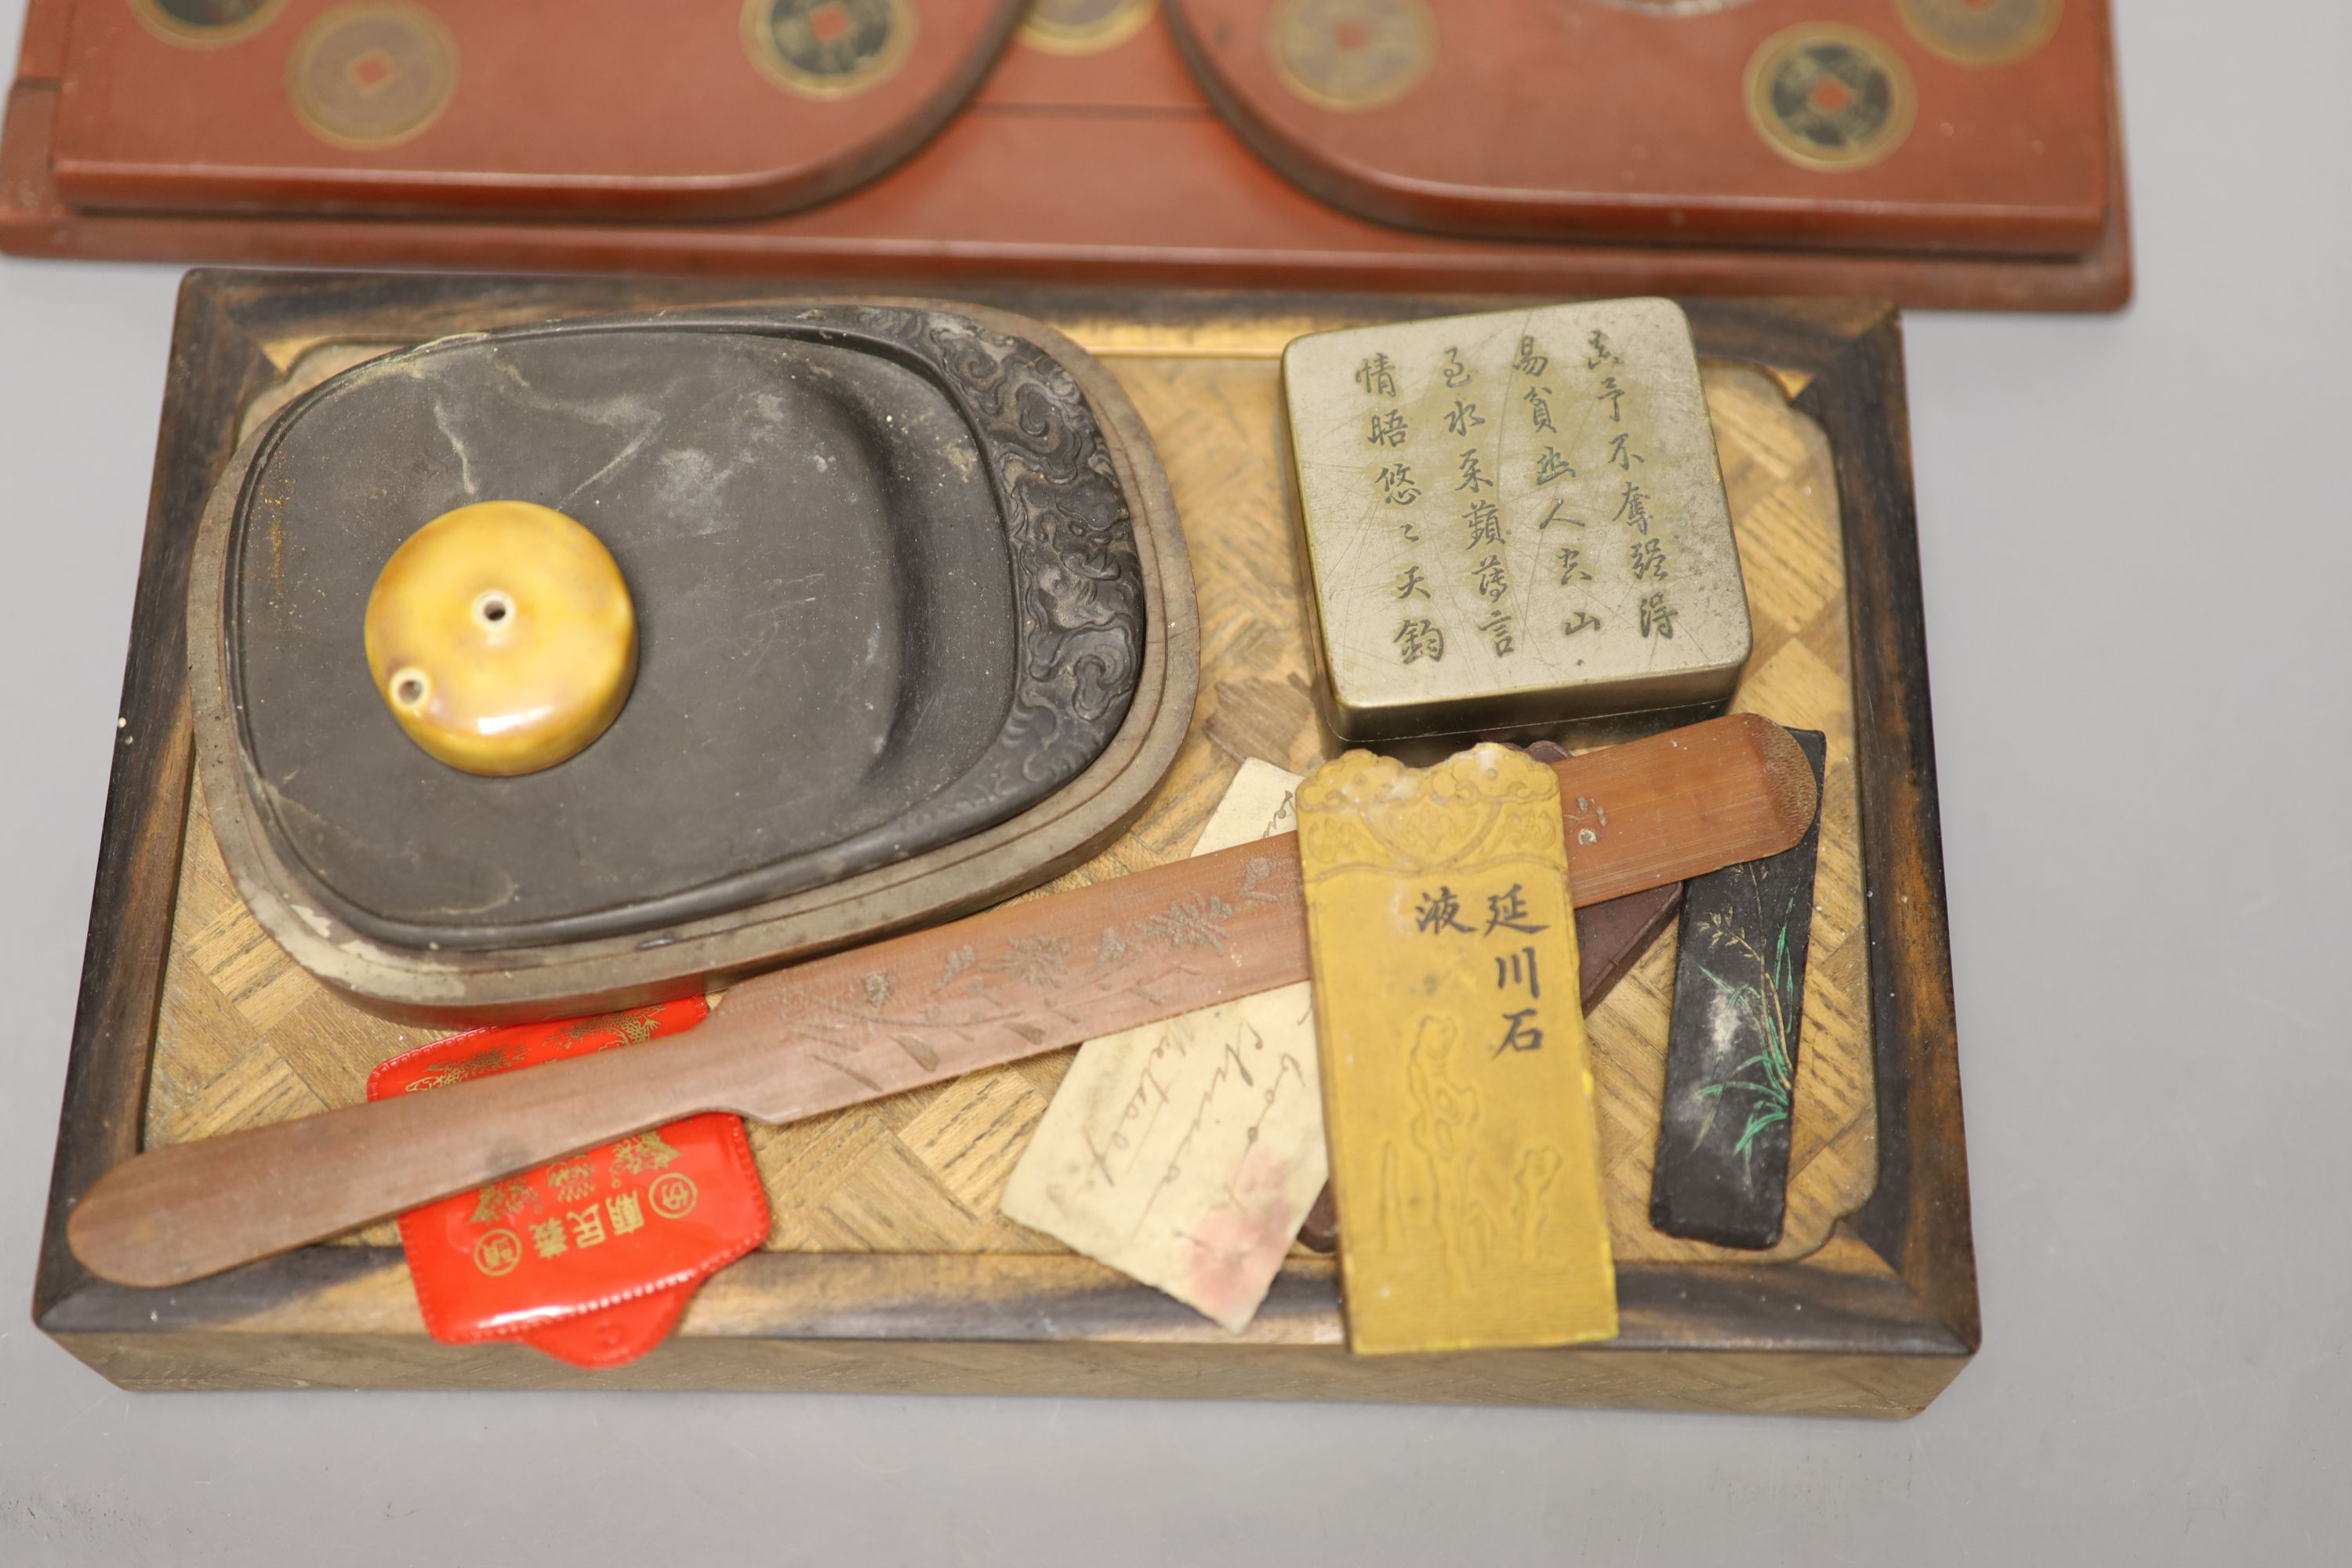 A group of Chinese and Japanese objects, 19th/20th century, including an inscribed ink box an - Image 9 of 17